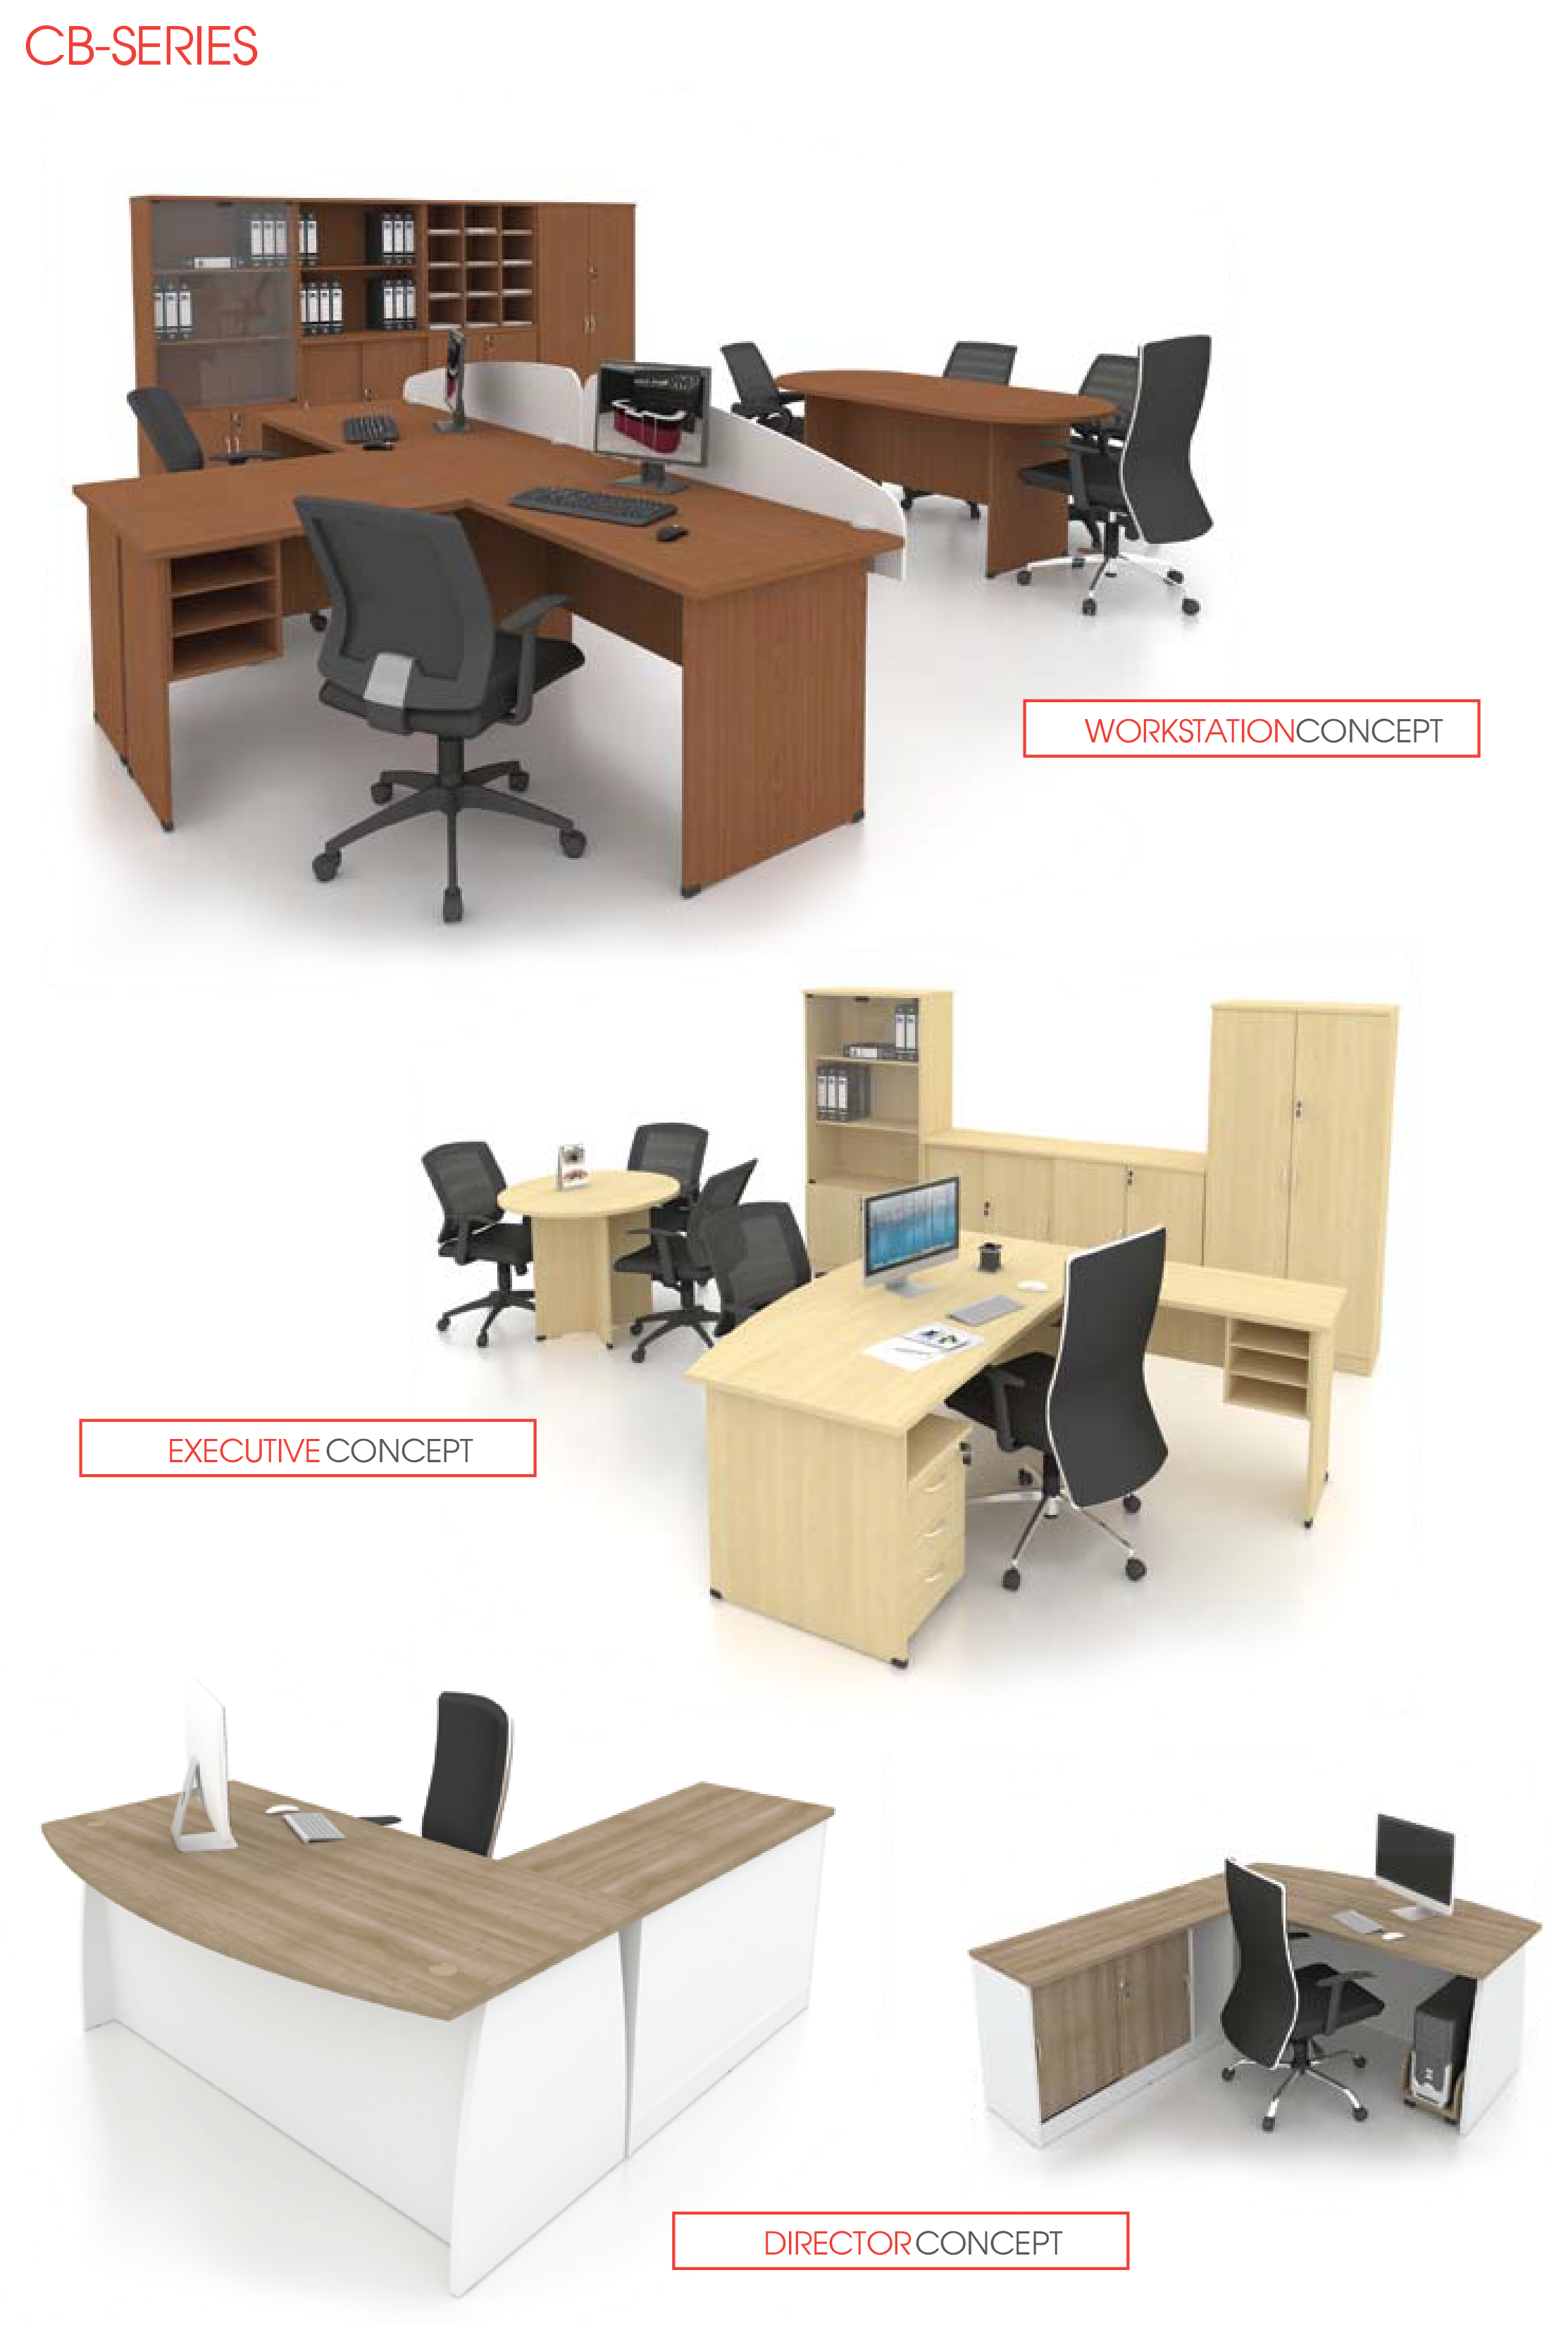 Maxoffice 2016. All Rights Reserved.